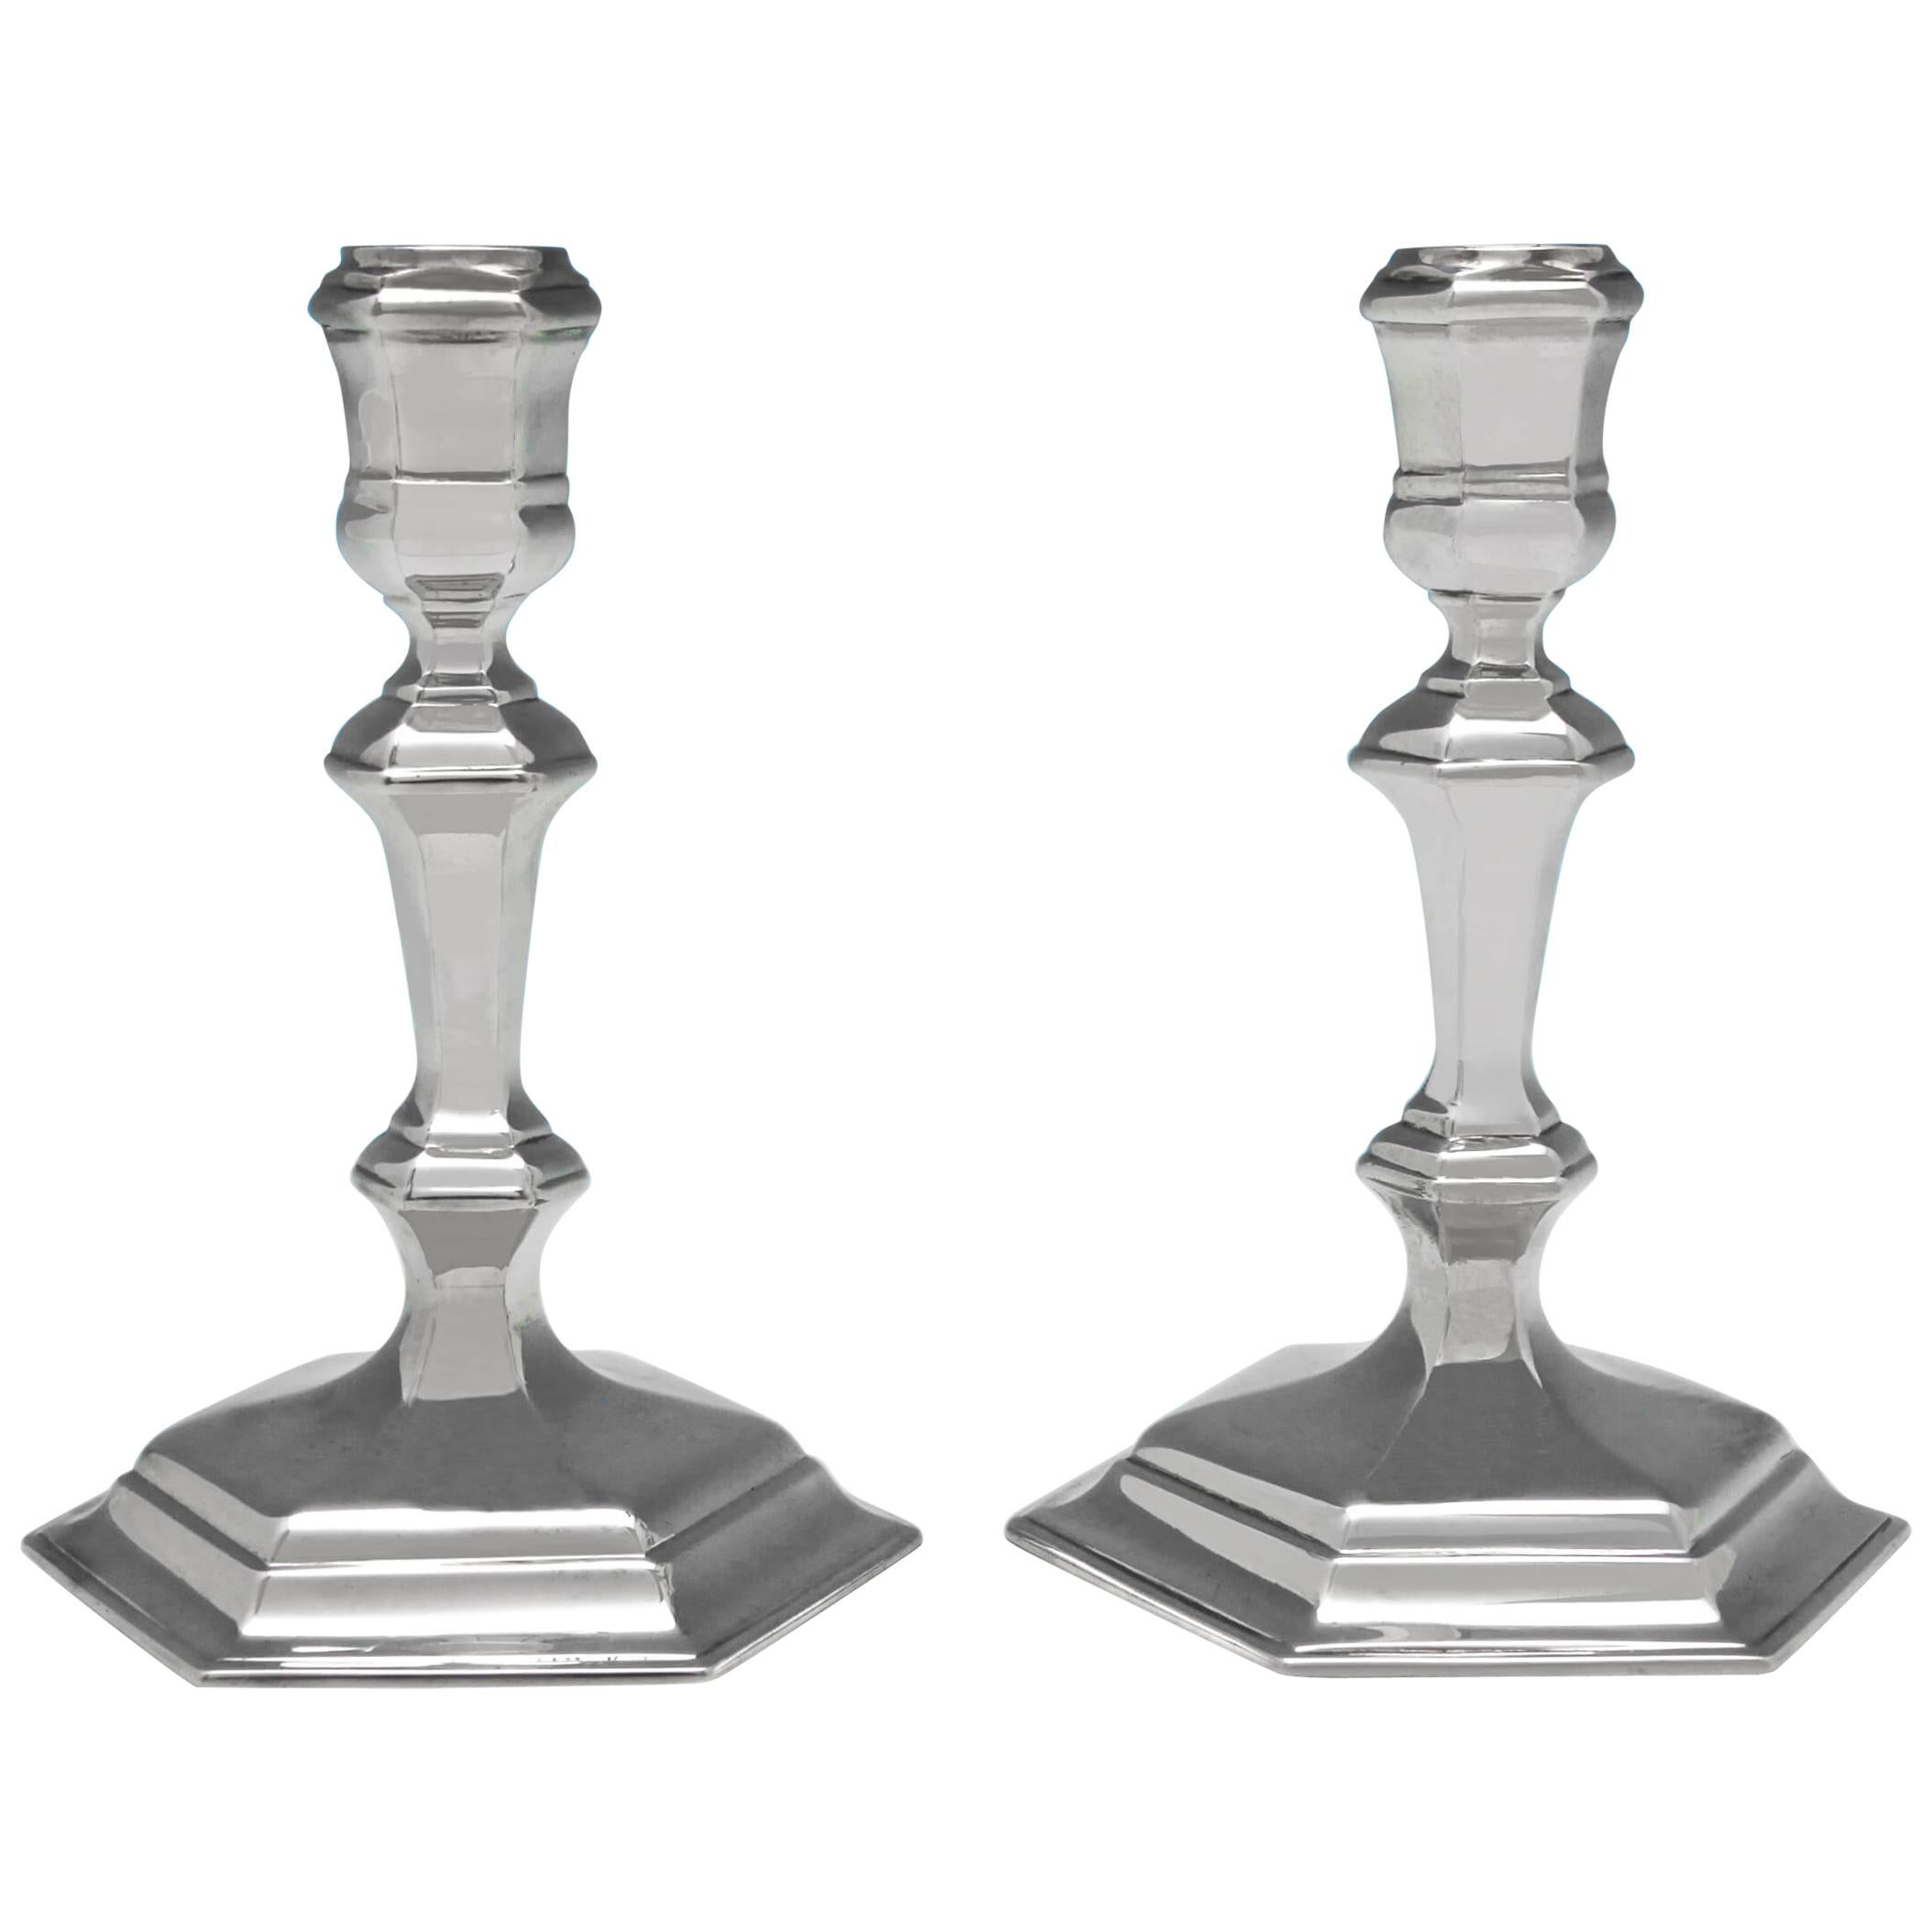 Hexagonal Victorian Antique Sterling Silver Pair of Cast Candlesticks from 1883